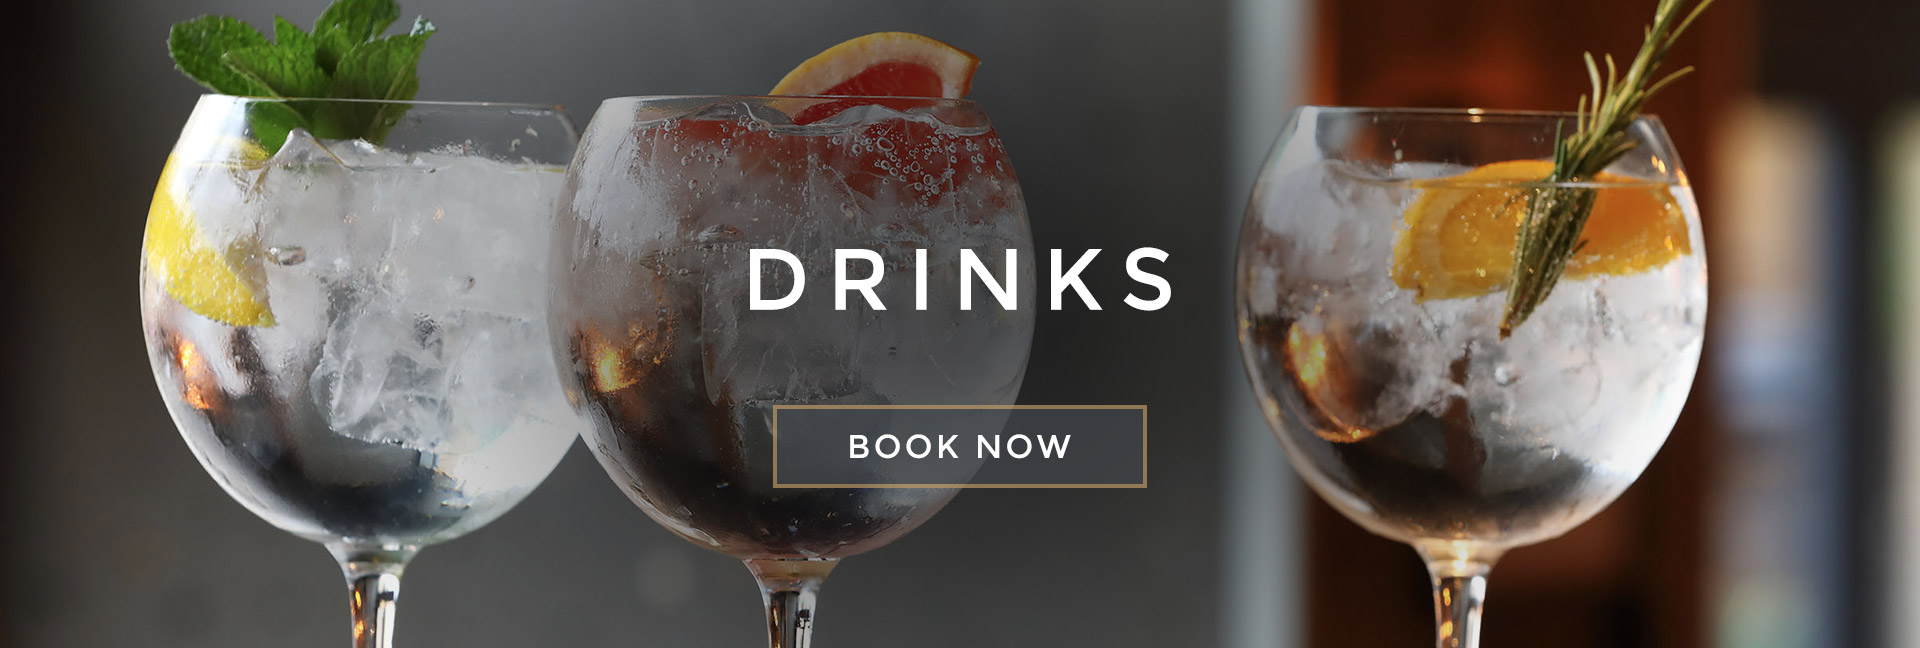 Drinks at All Bar One Sheffield - Book your table